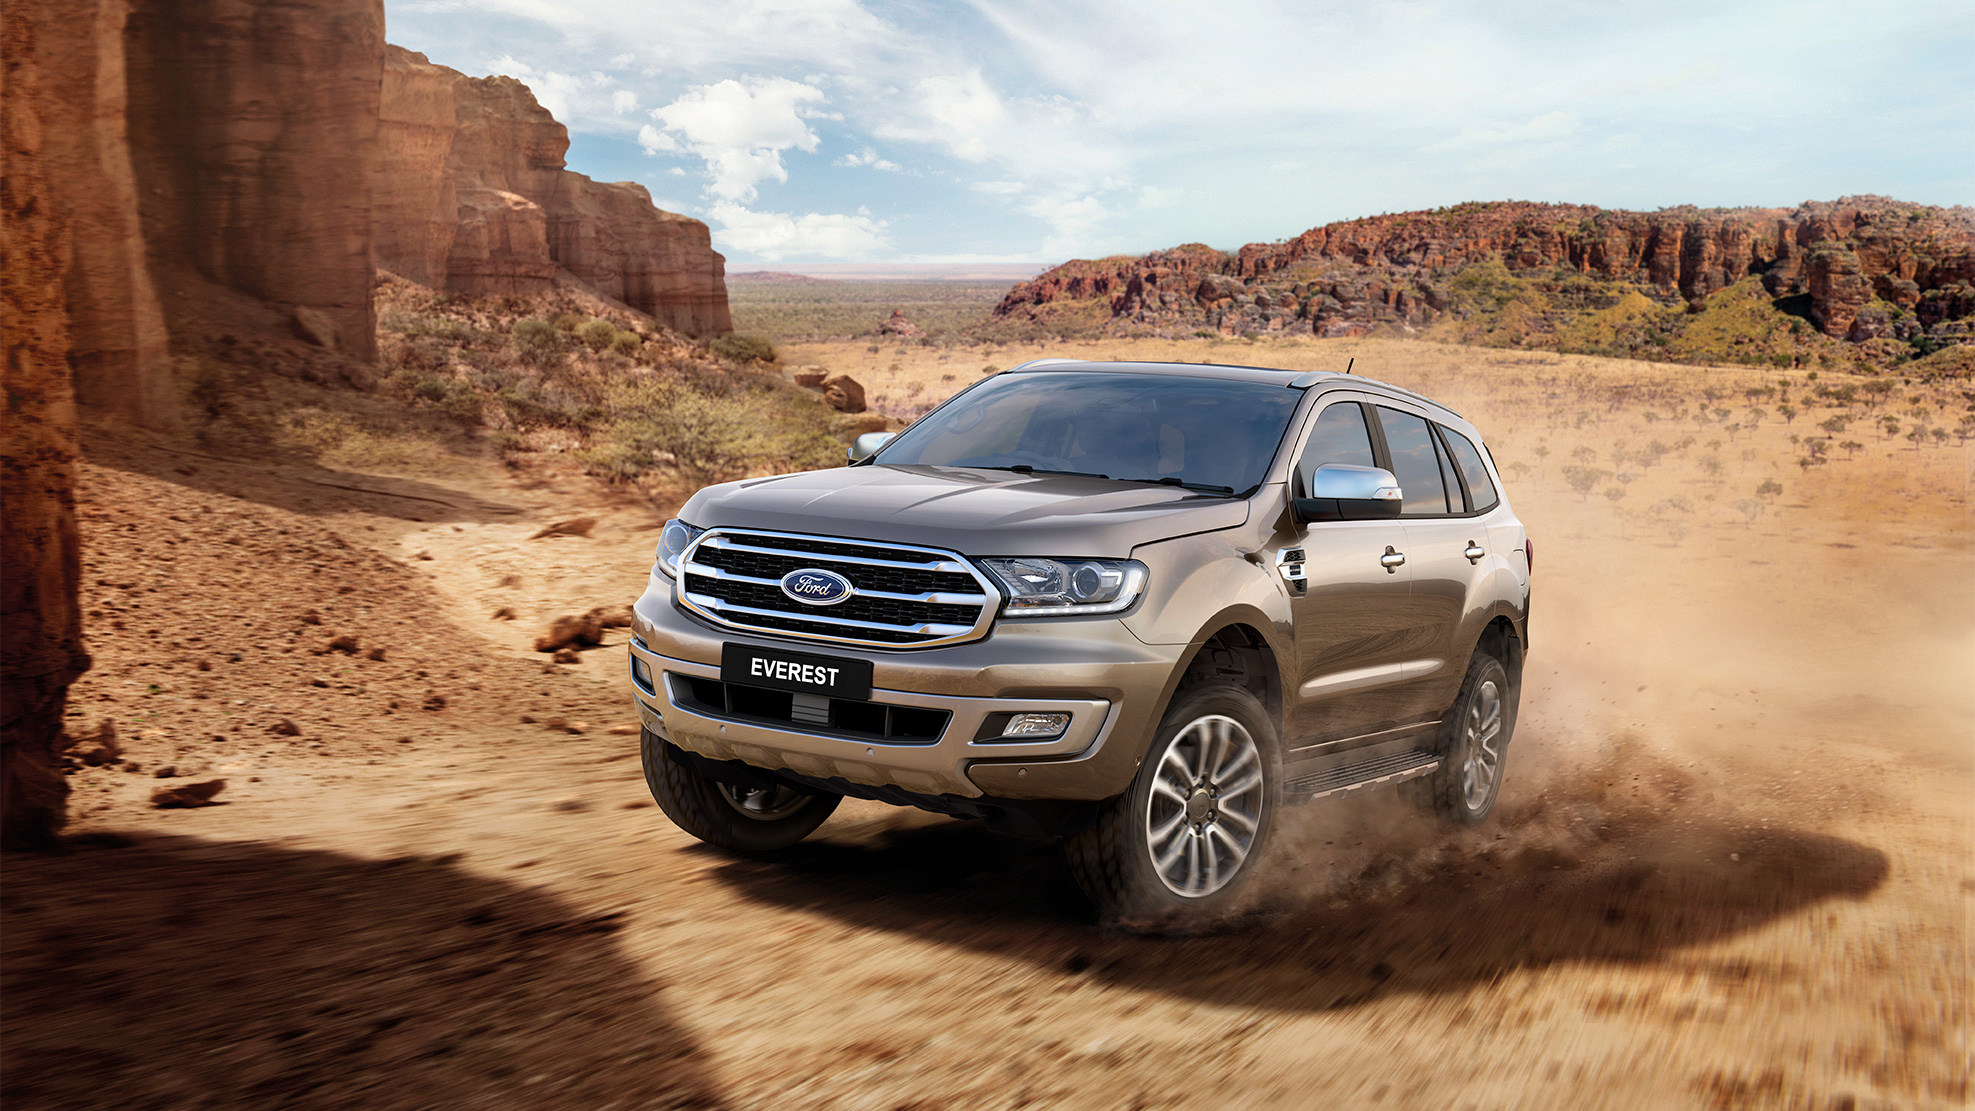 Ford Everest Titanium 2018 Suv, HD Cars, 4k Wallpapers